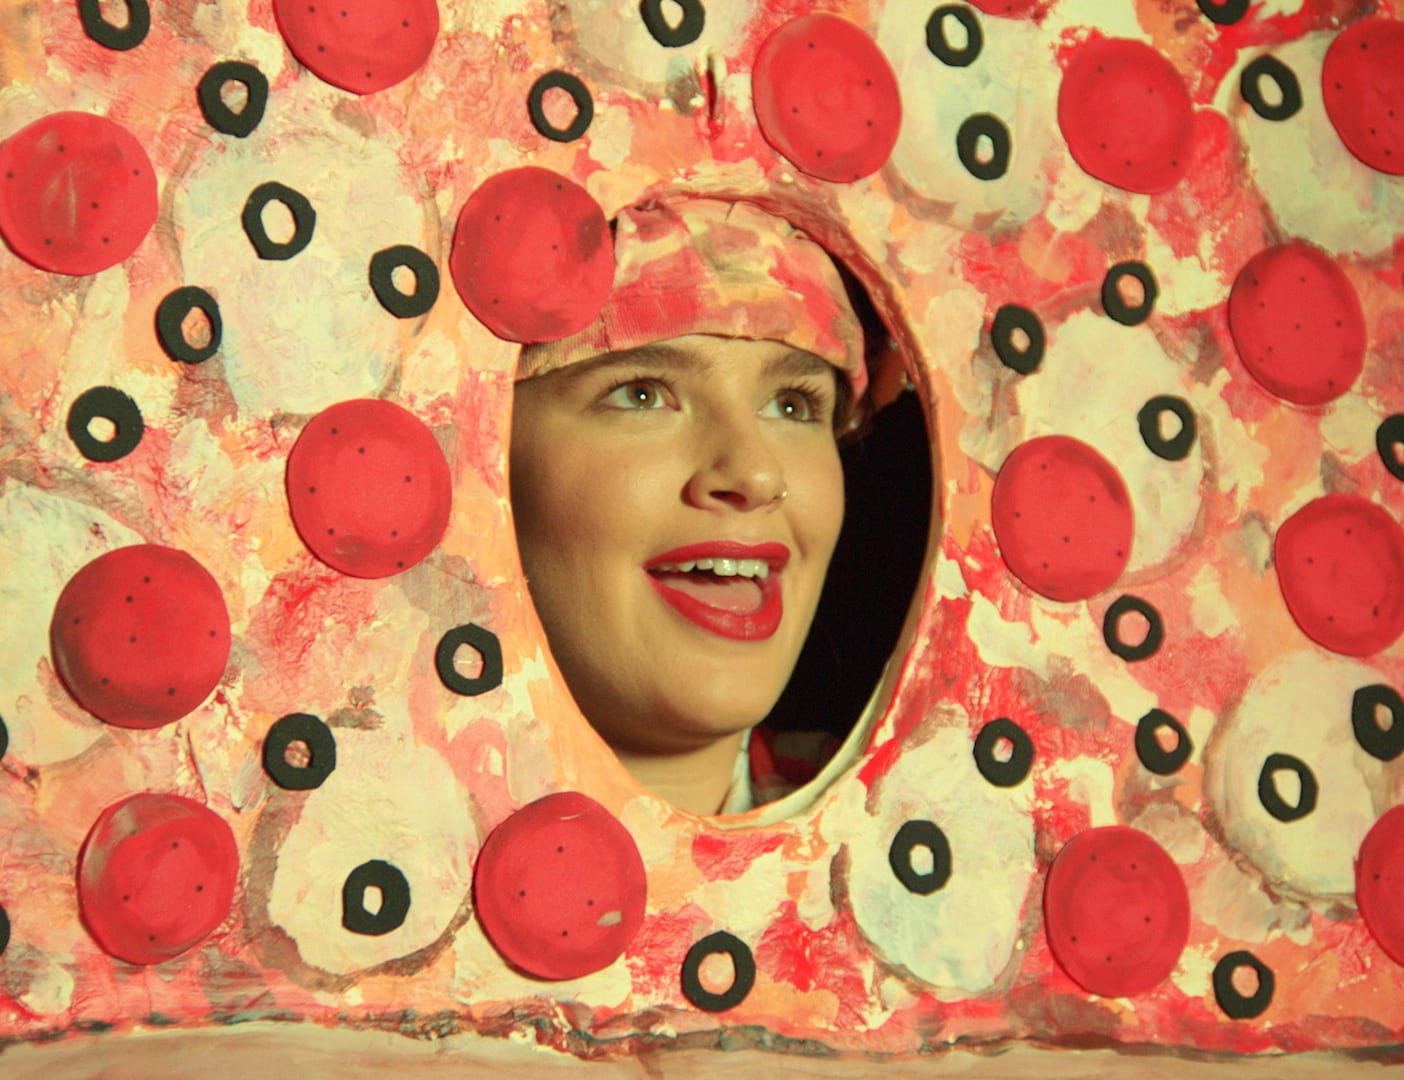 Pizza The Musical